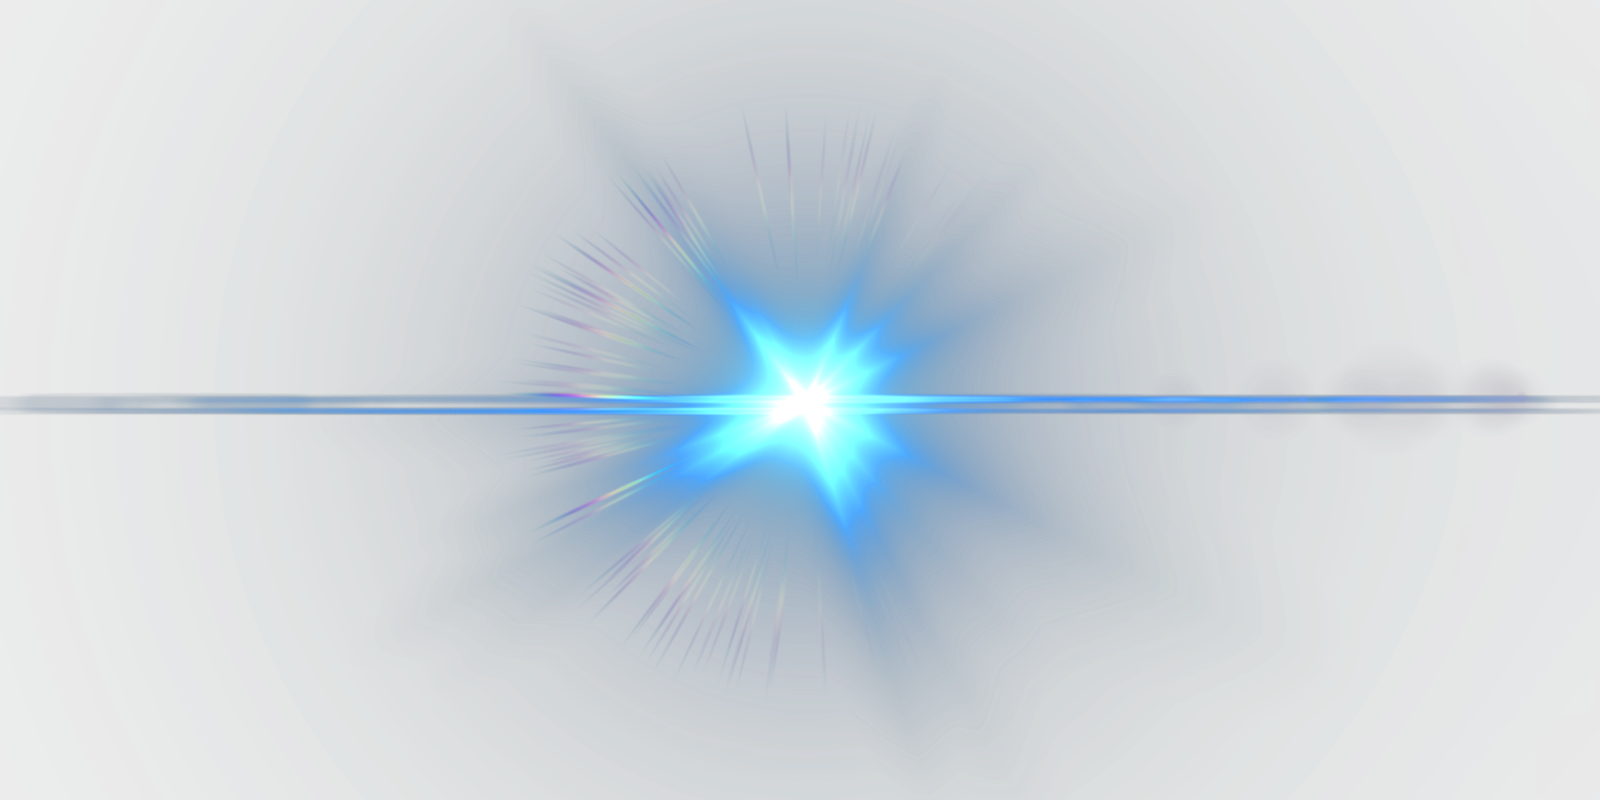 red light flare png - Hd Lense Flare - Lens Flare Glow ...